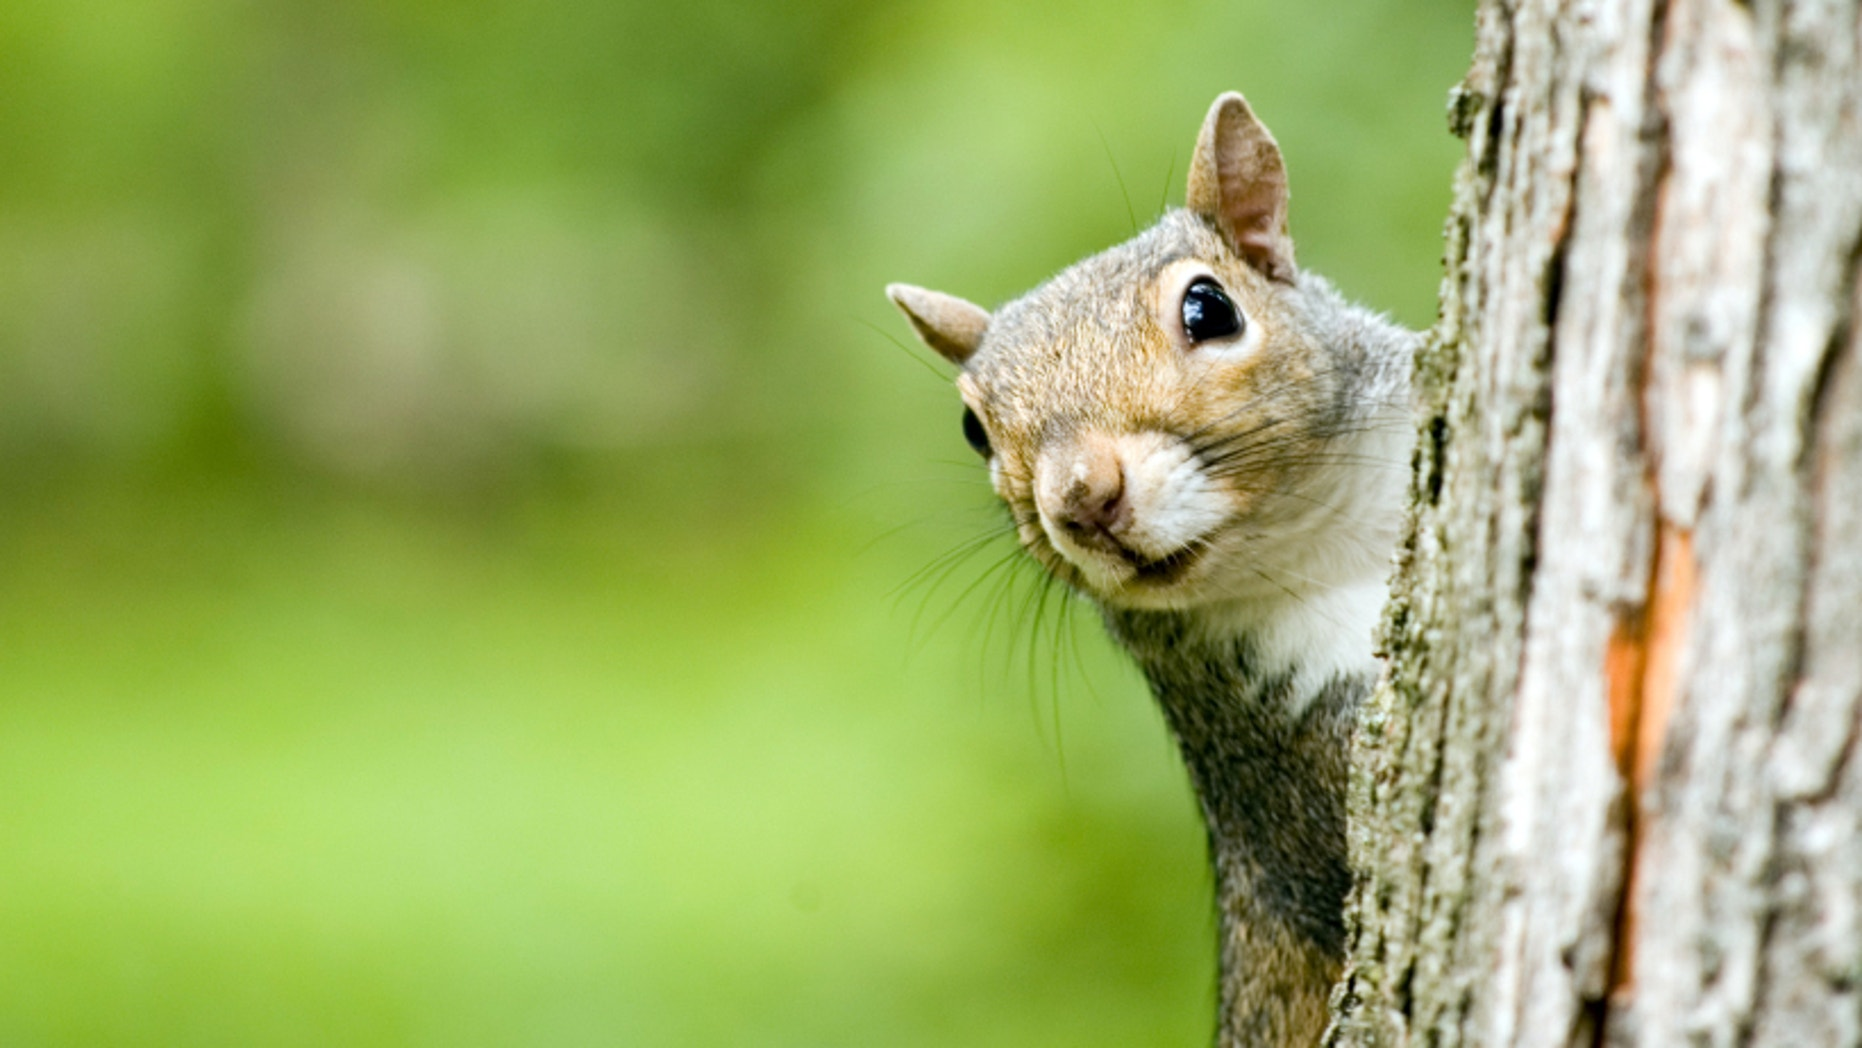 A plague-infected squirrel (not shown here) has prompted the closure of three campgrounds in the Angeles National Forest.